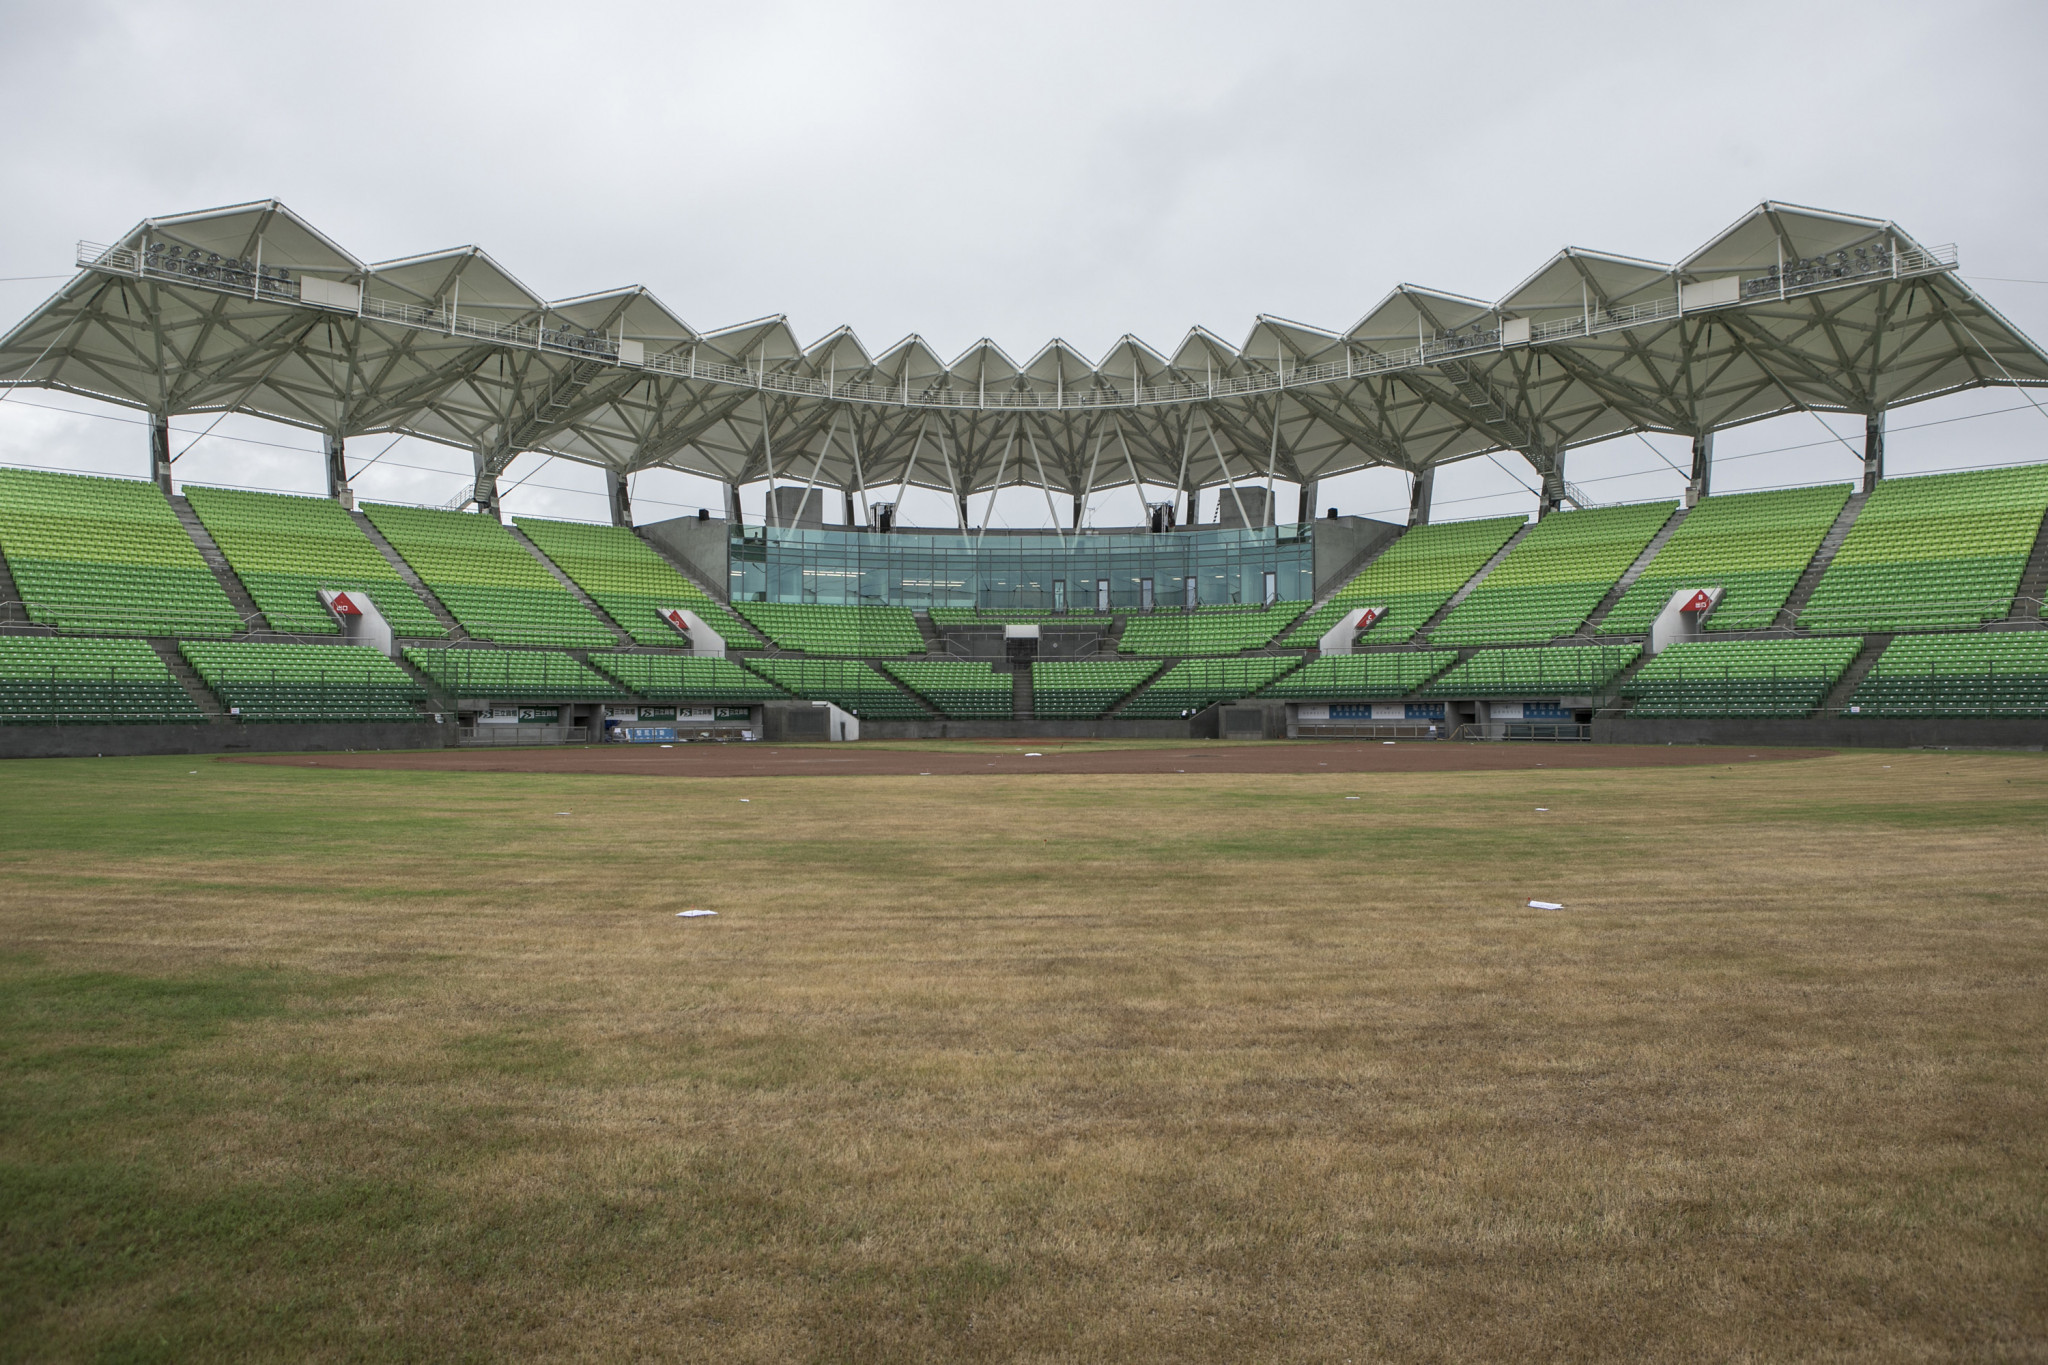 WBSC Under-12s Baseball World Cup postponed again to summer 2022